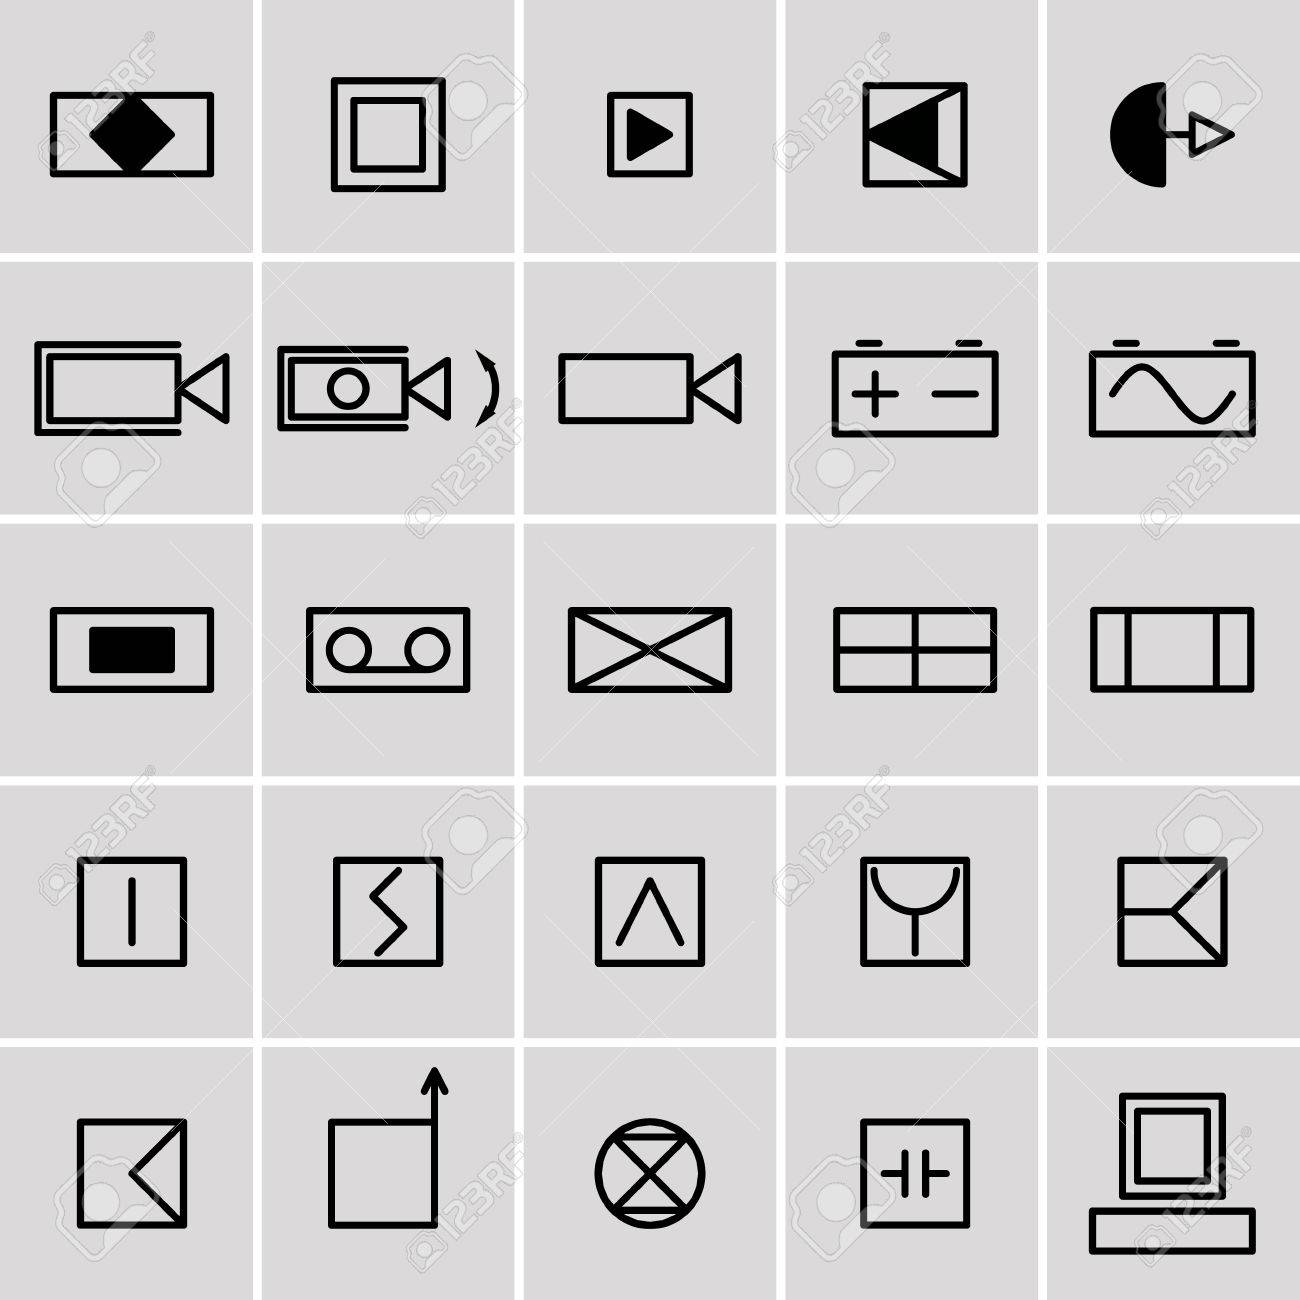 Generous electrical symbol photos everything you need to know icons electrical symbols royalty free cliparts vectors and stock biocorpaavc Choice Image